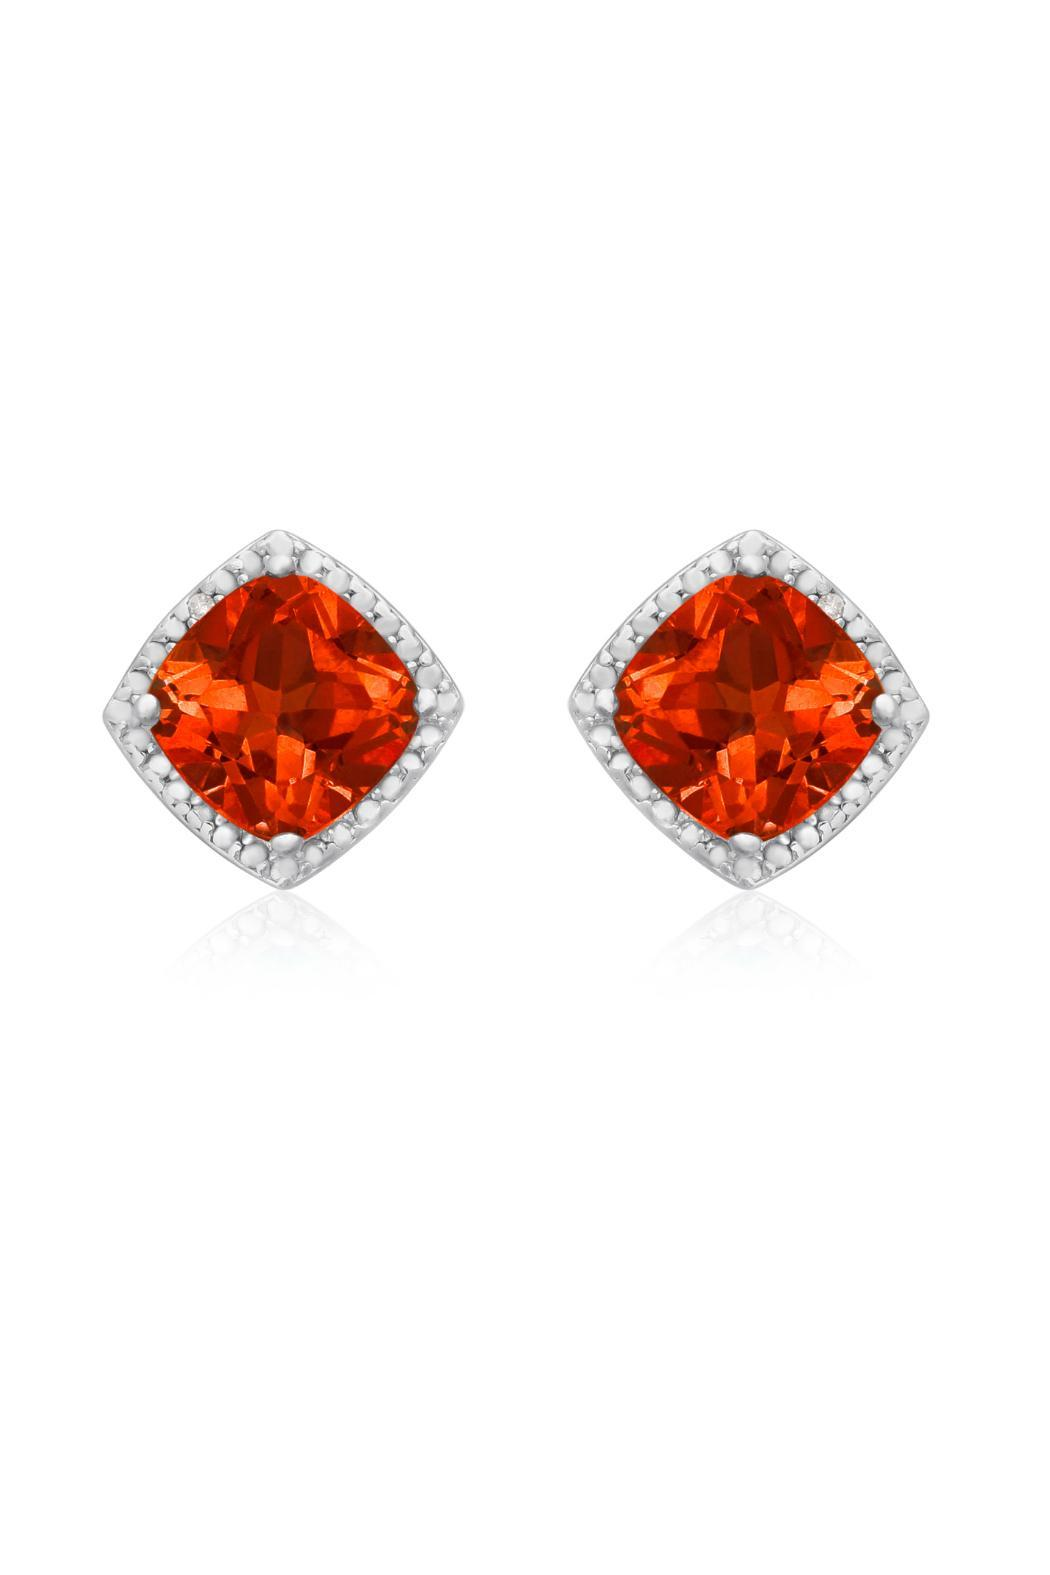 padparadscha david sapphire earrings diamond a surround ring morris of pin nestled ovals white in oval